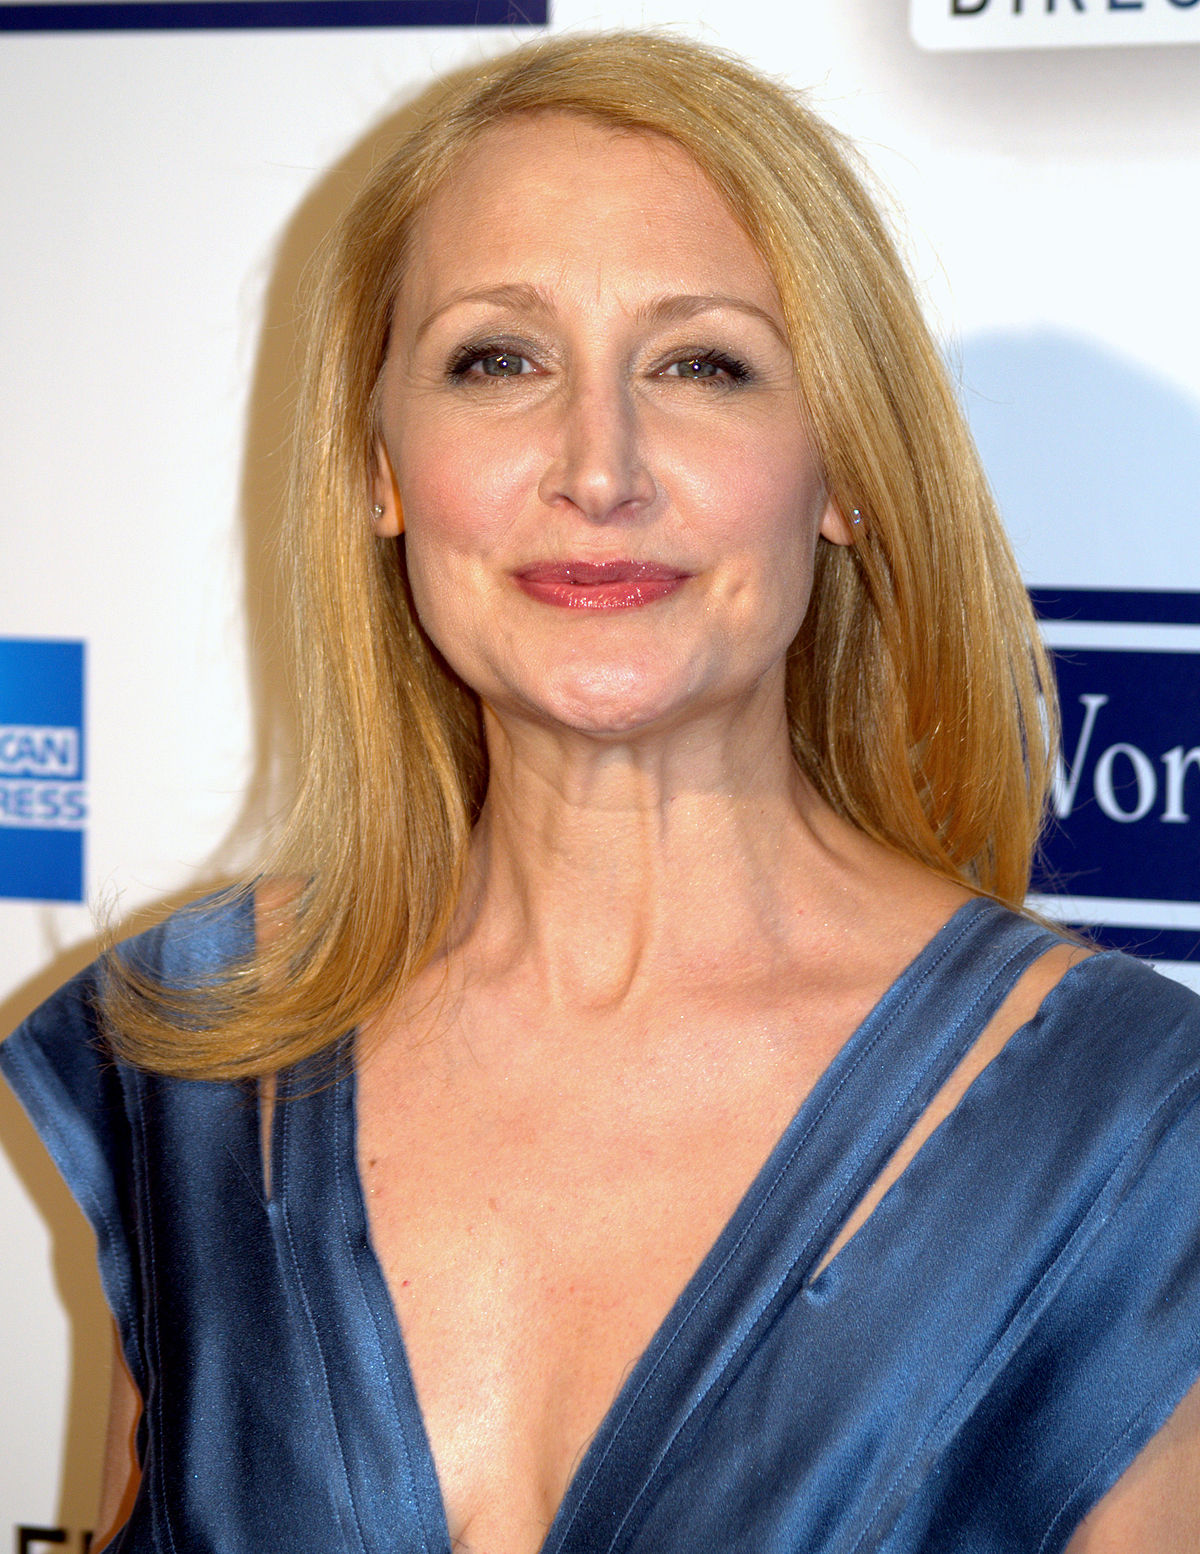 Patricia Clarkson nude (32 fotos) Sideboobs, iCloud, lingerie